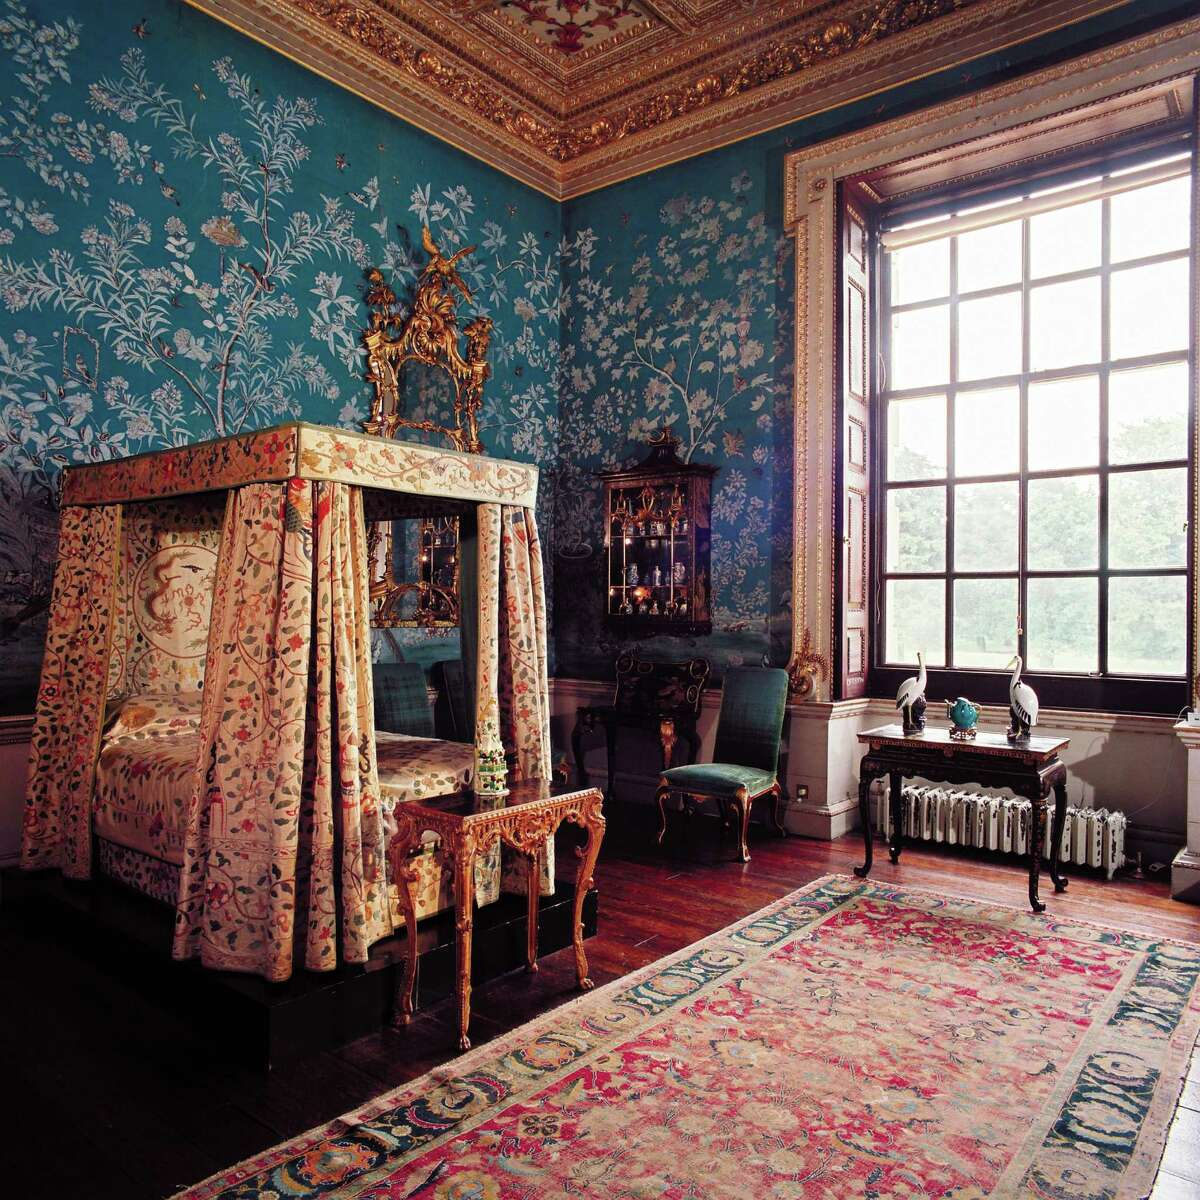 """Items from the Cabinet Room will be among the works on view in """"Houghton Hall: Portrait of an English Country House."""" The exhibit opens its US tour at the Museum of Fine Arts, Houston June 22 - Sept. 21, 2014."""